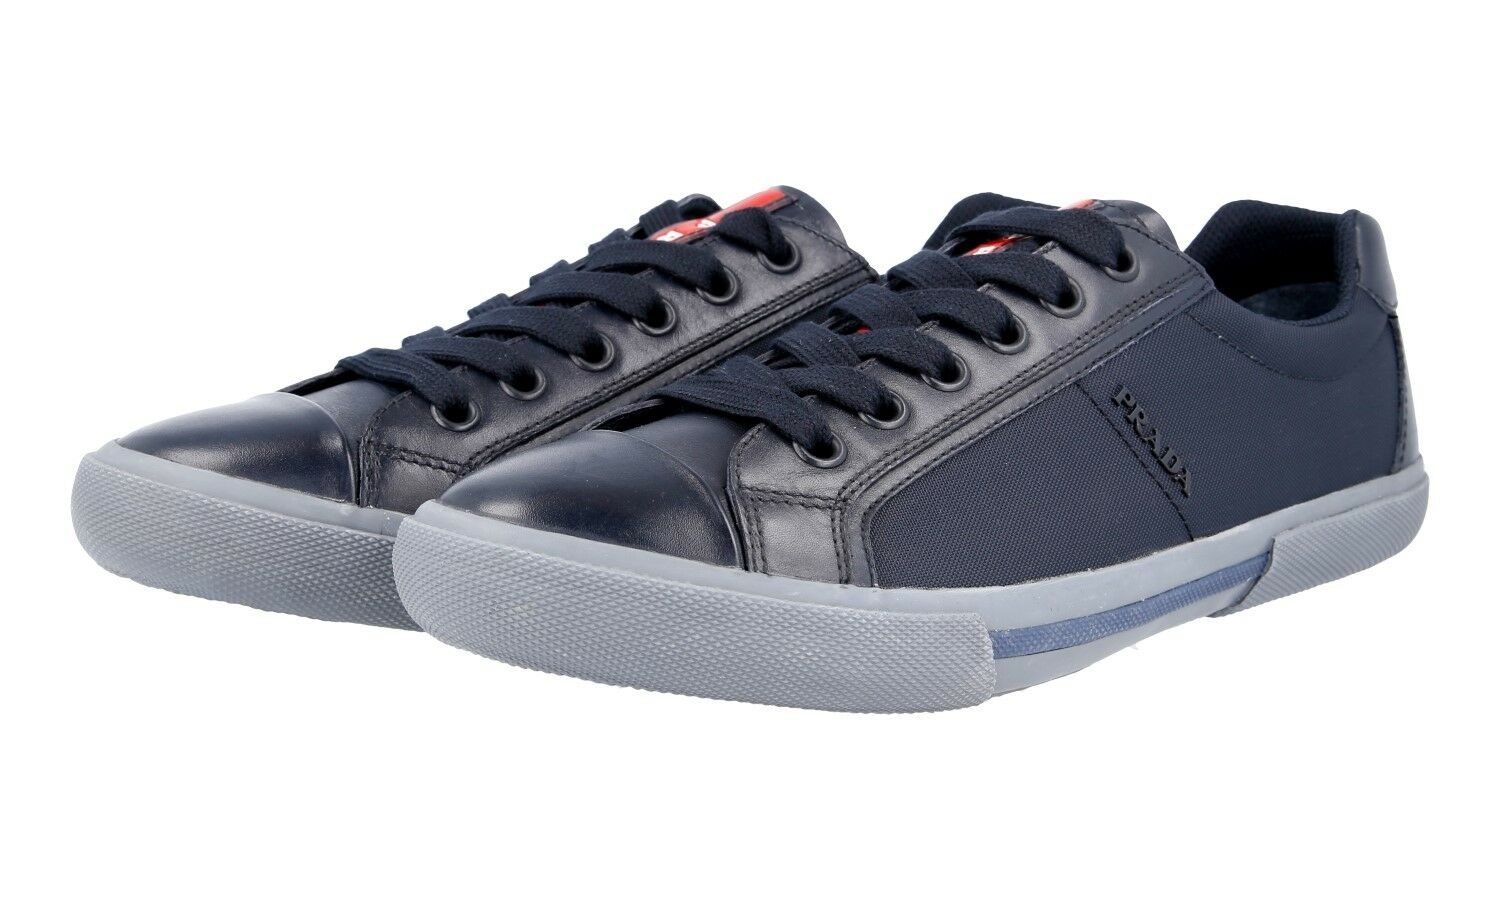 AUTHENTIC LUXURY PRADA SNEAKERS SHOES 4E3028 blueE NEW US 7.5